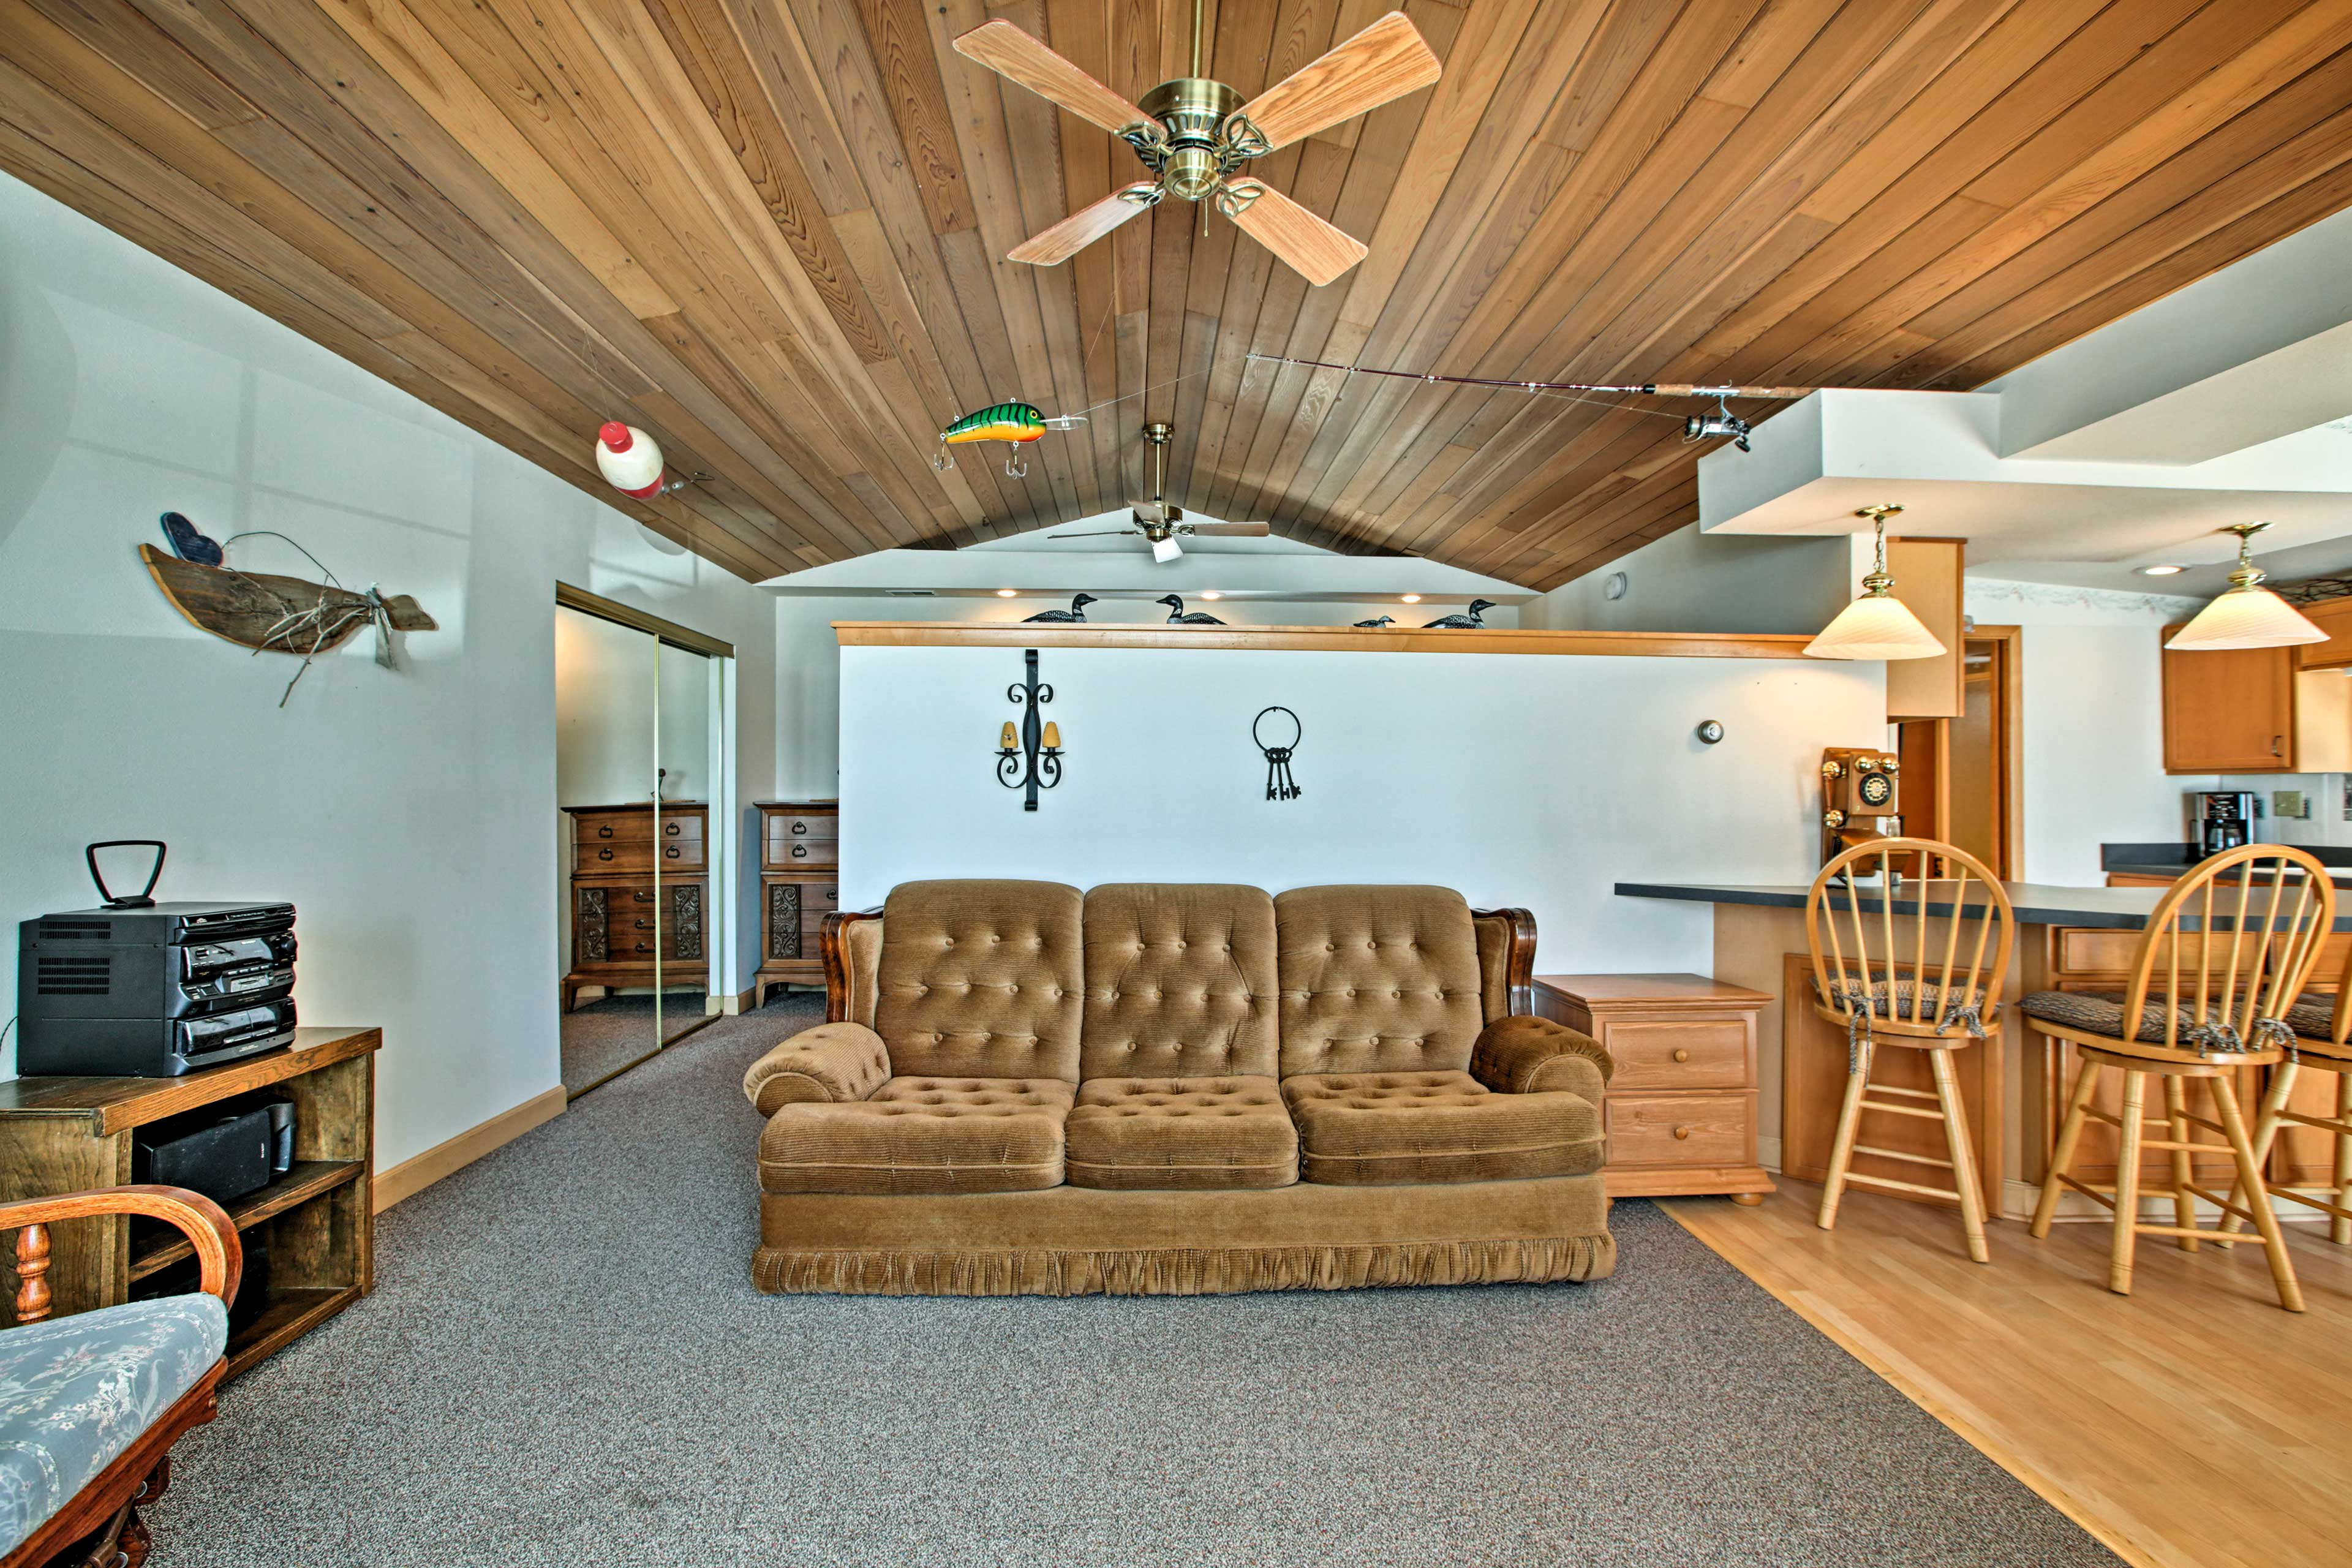 Relax on the comfortable 3-person sofa in the living room.